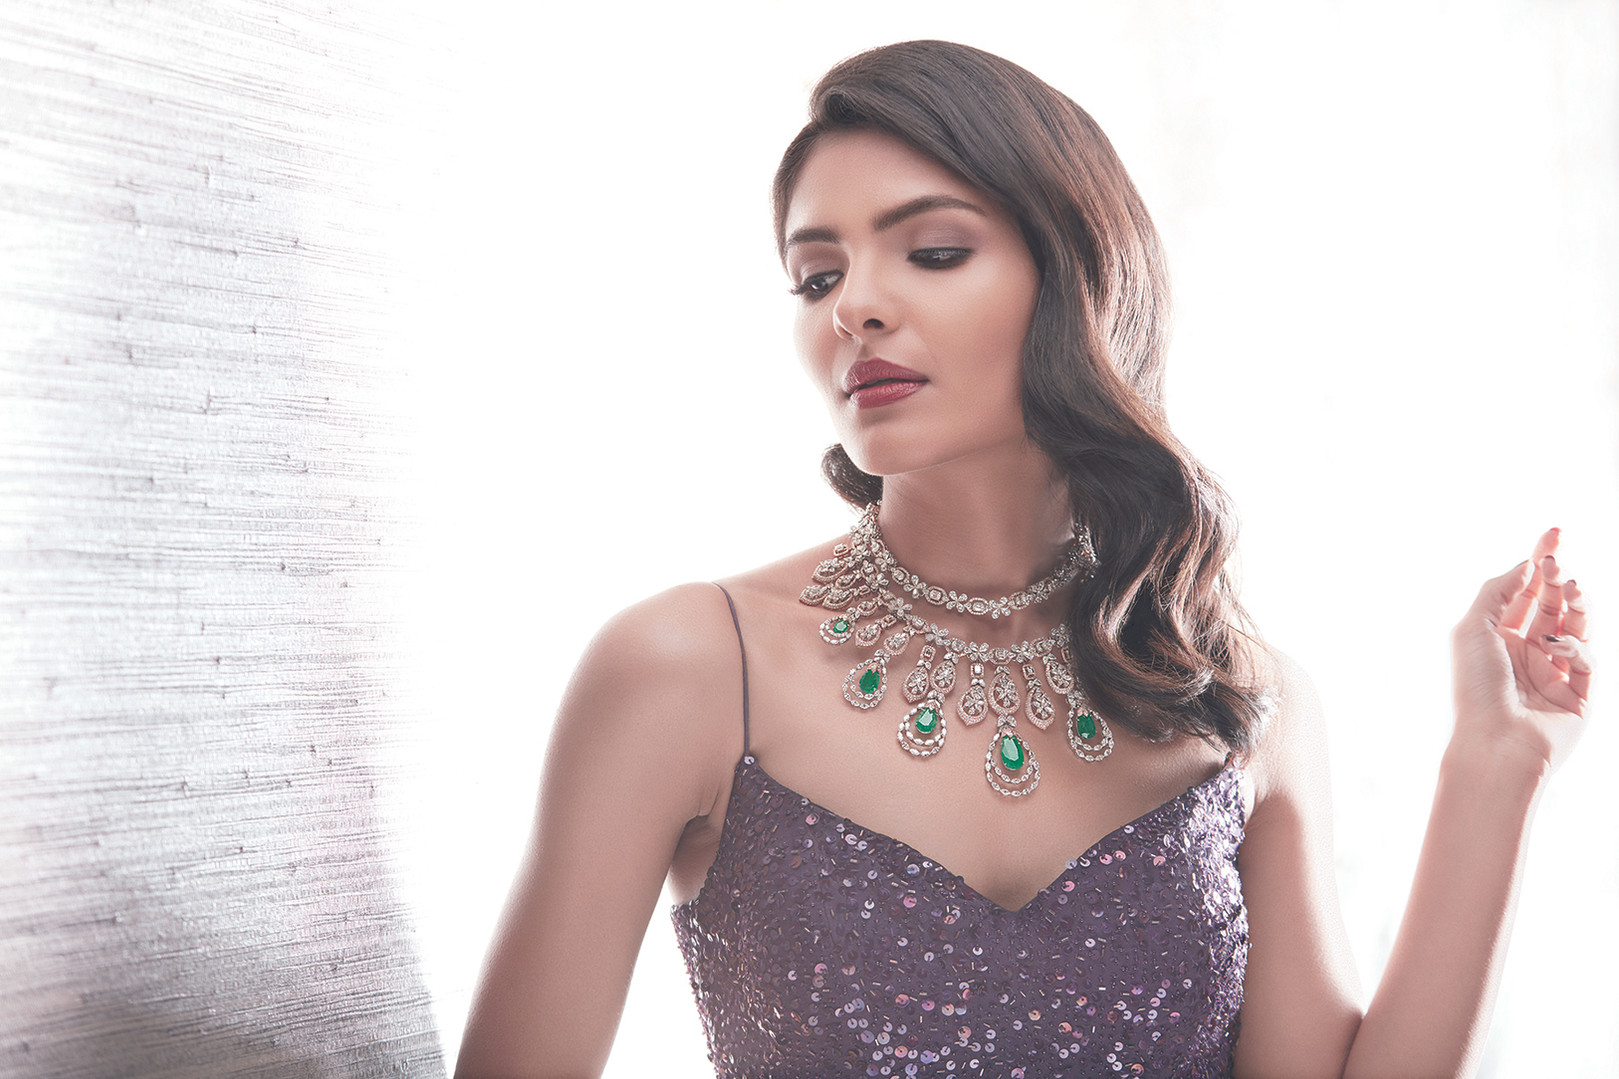 A glamorous necklace featuring emeralds and diamonds.